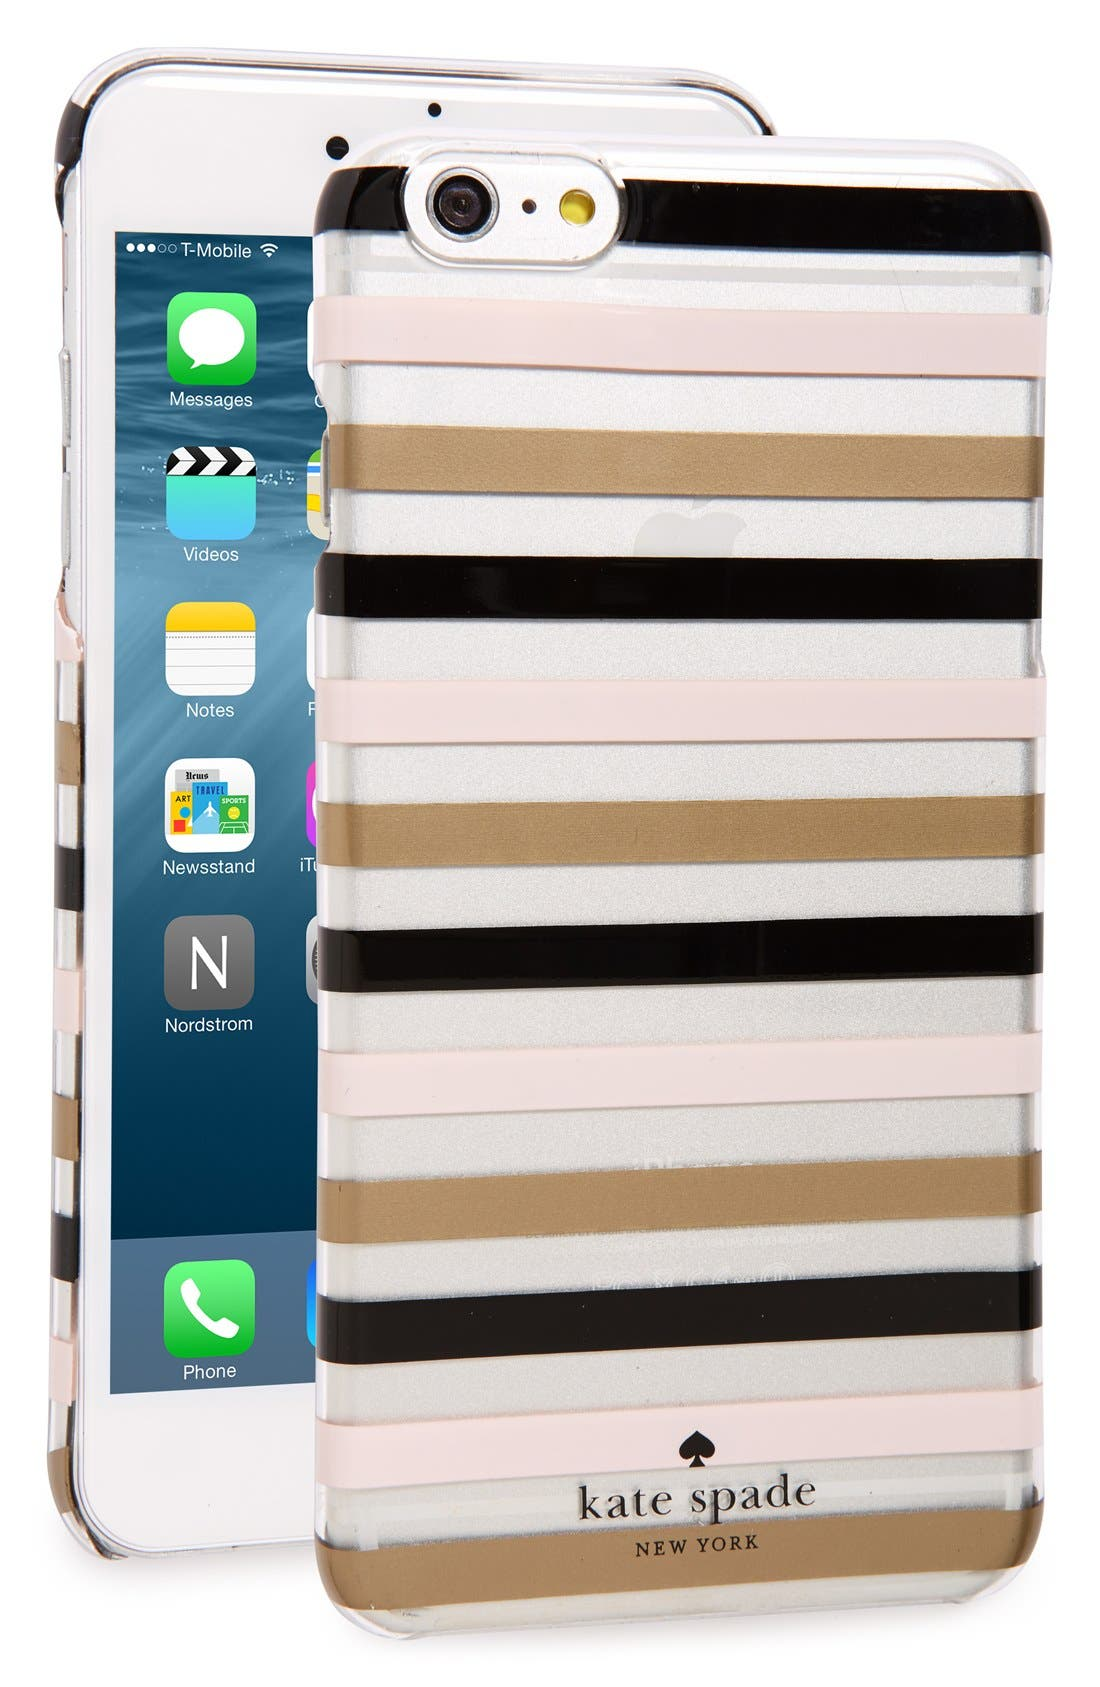 Main Image - kate spade new york watch hill iPhone 6 Plus/6s Plus case